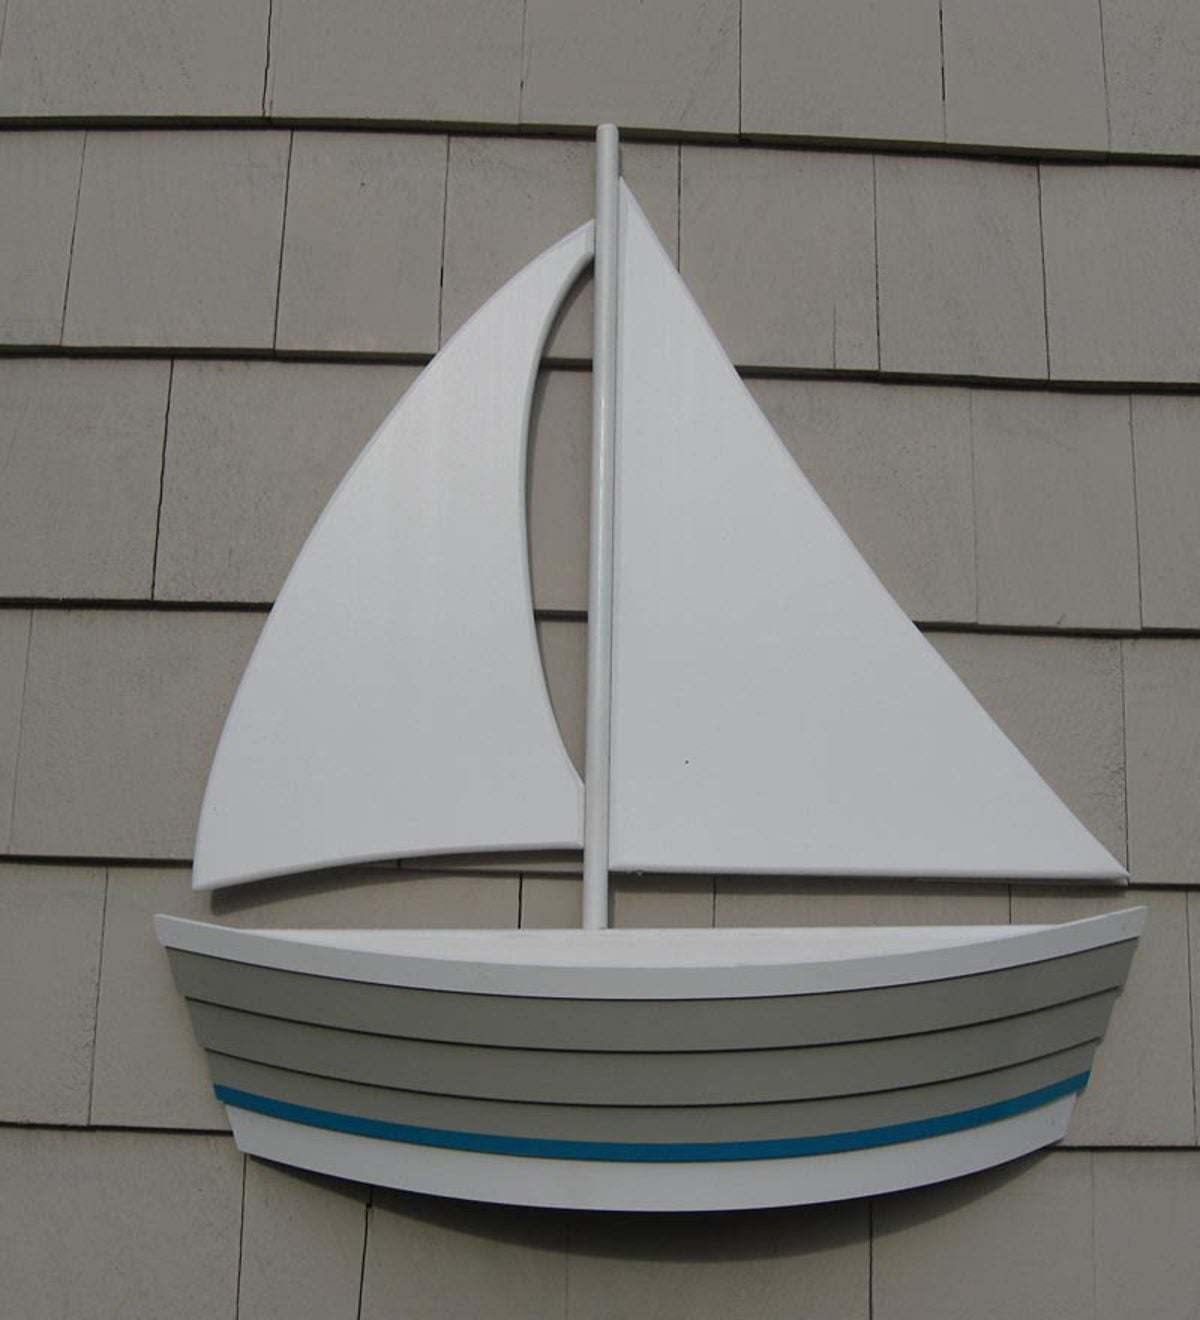 Cape Cod Sailboat Flowerpot Planter